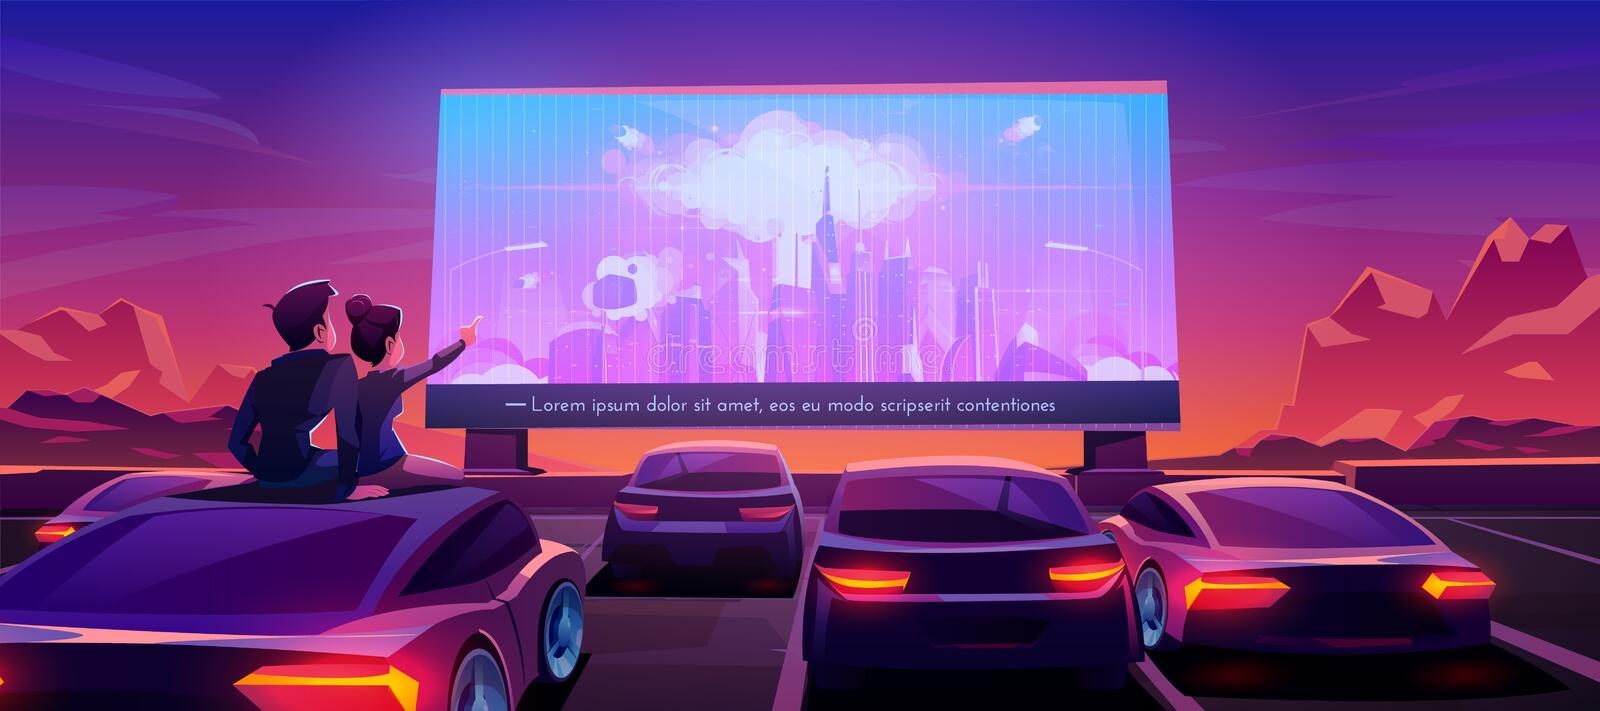 Drive Theater Stock Illustrations 169 Drive Theater Stock Illustrations Vectors Clipart Dreamstime